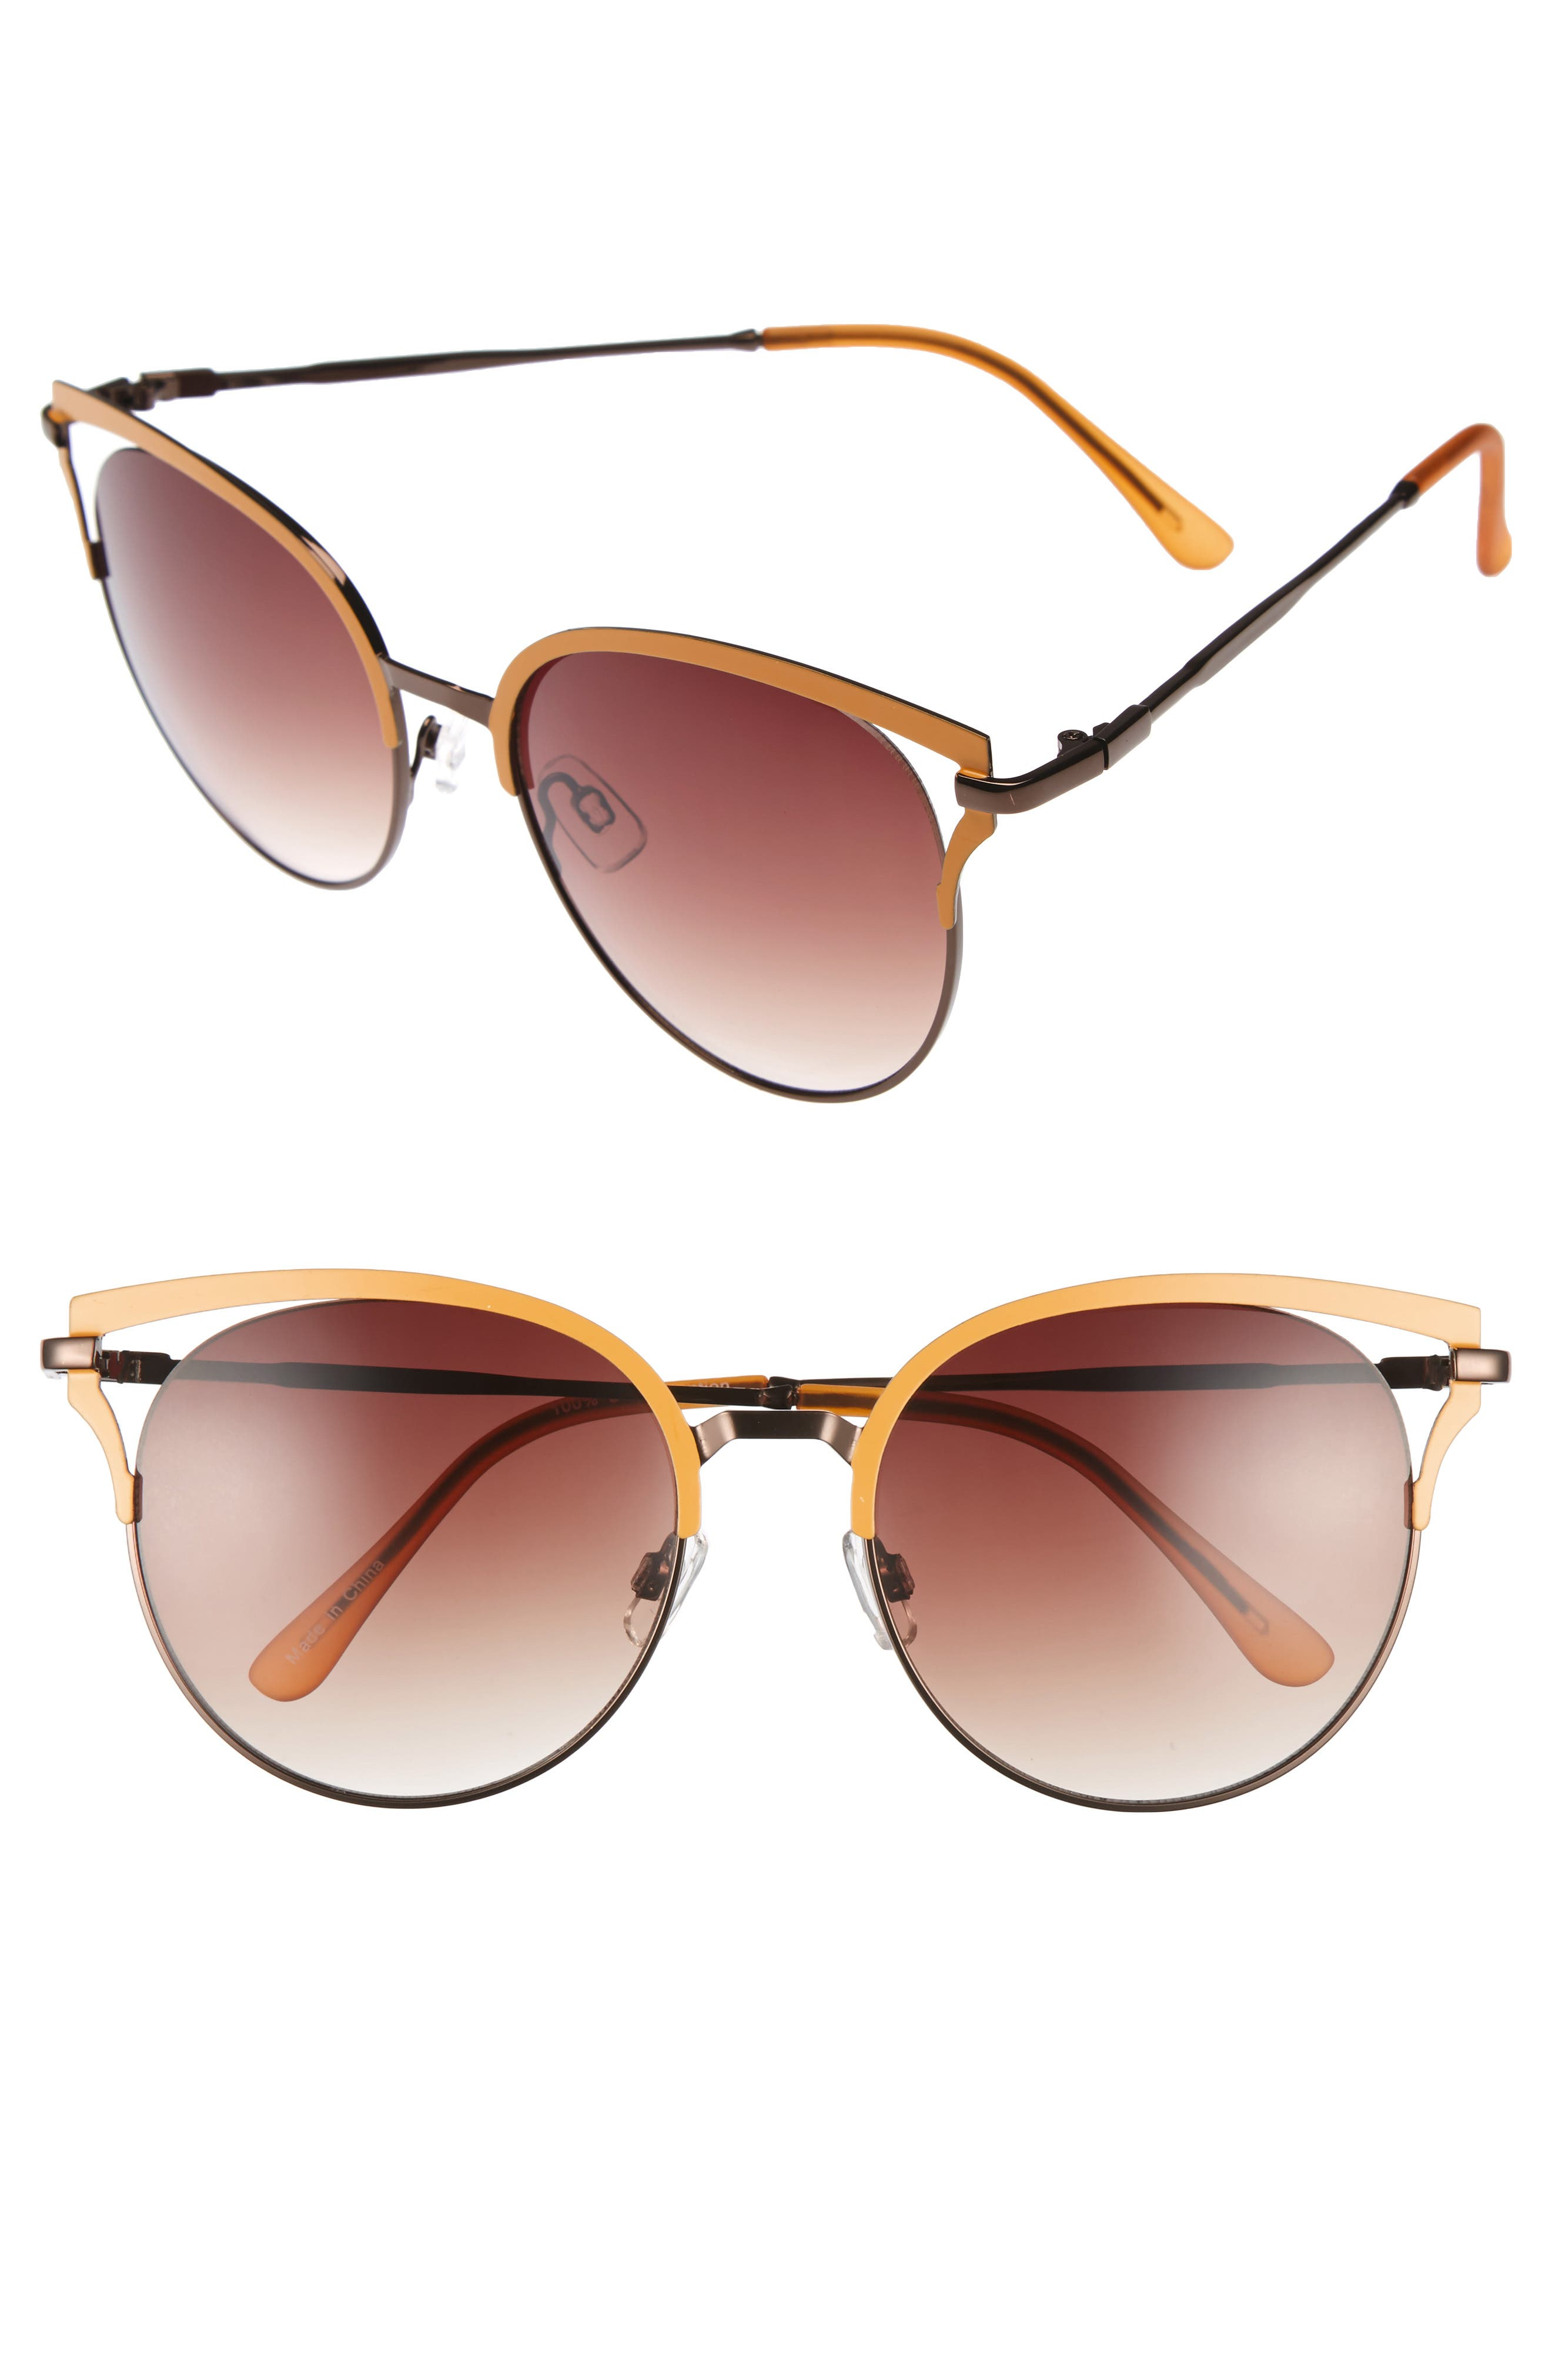 55mm Colored Round Sunglasses,                             Main thumbnail 1, color,                             Mustard/ Gold